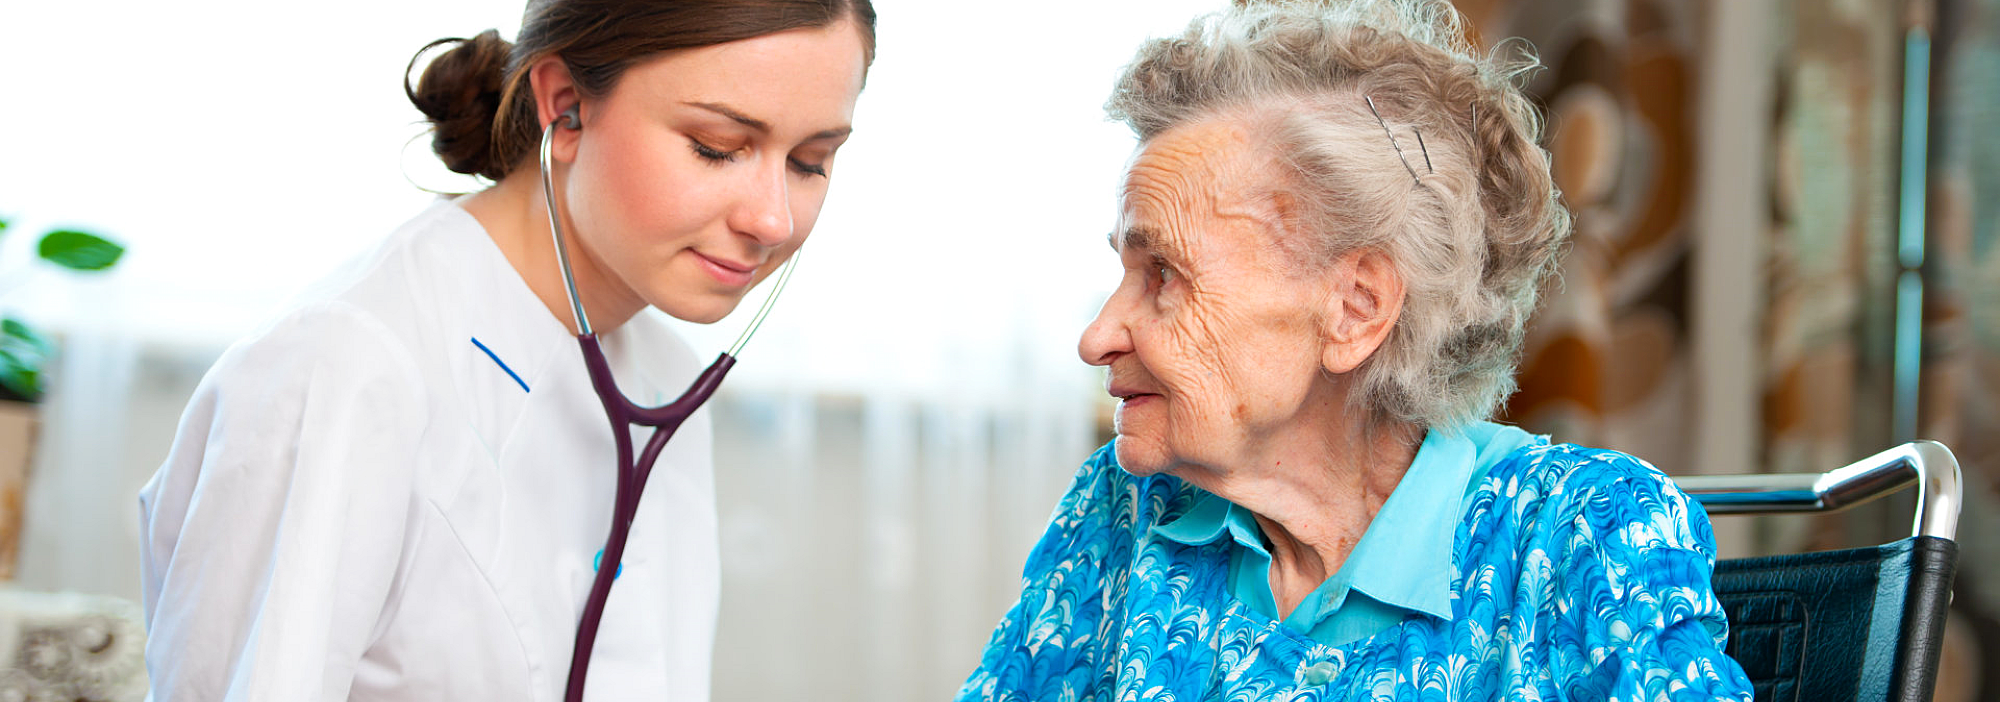 a nurse with a stethoscope and an old woman